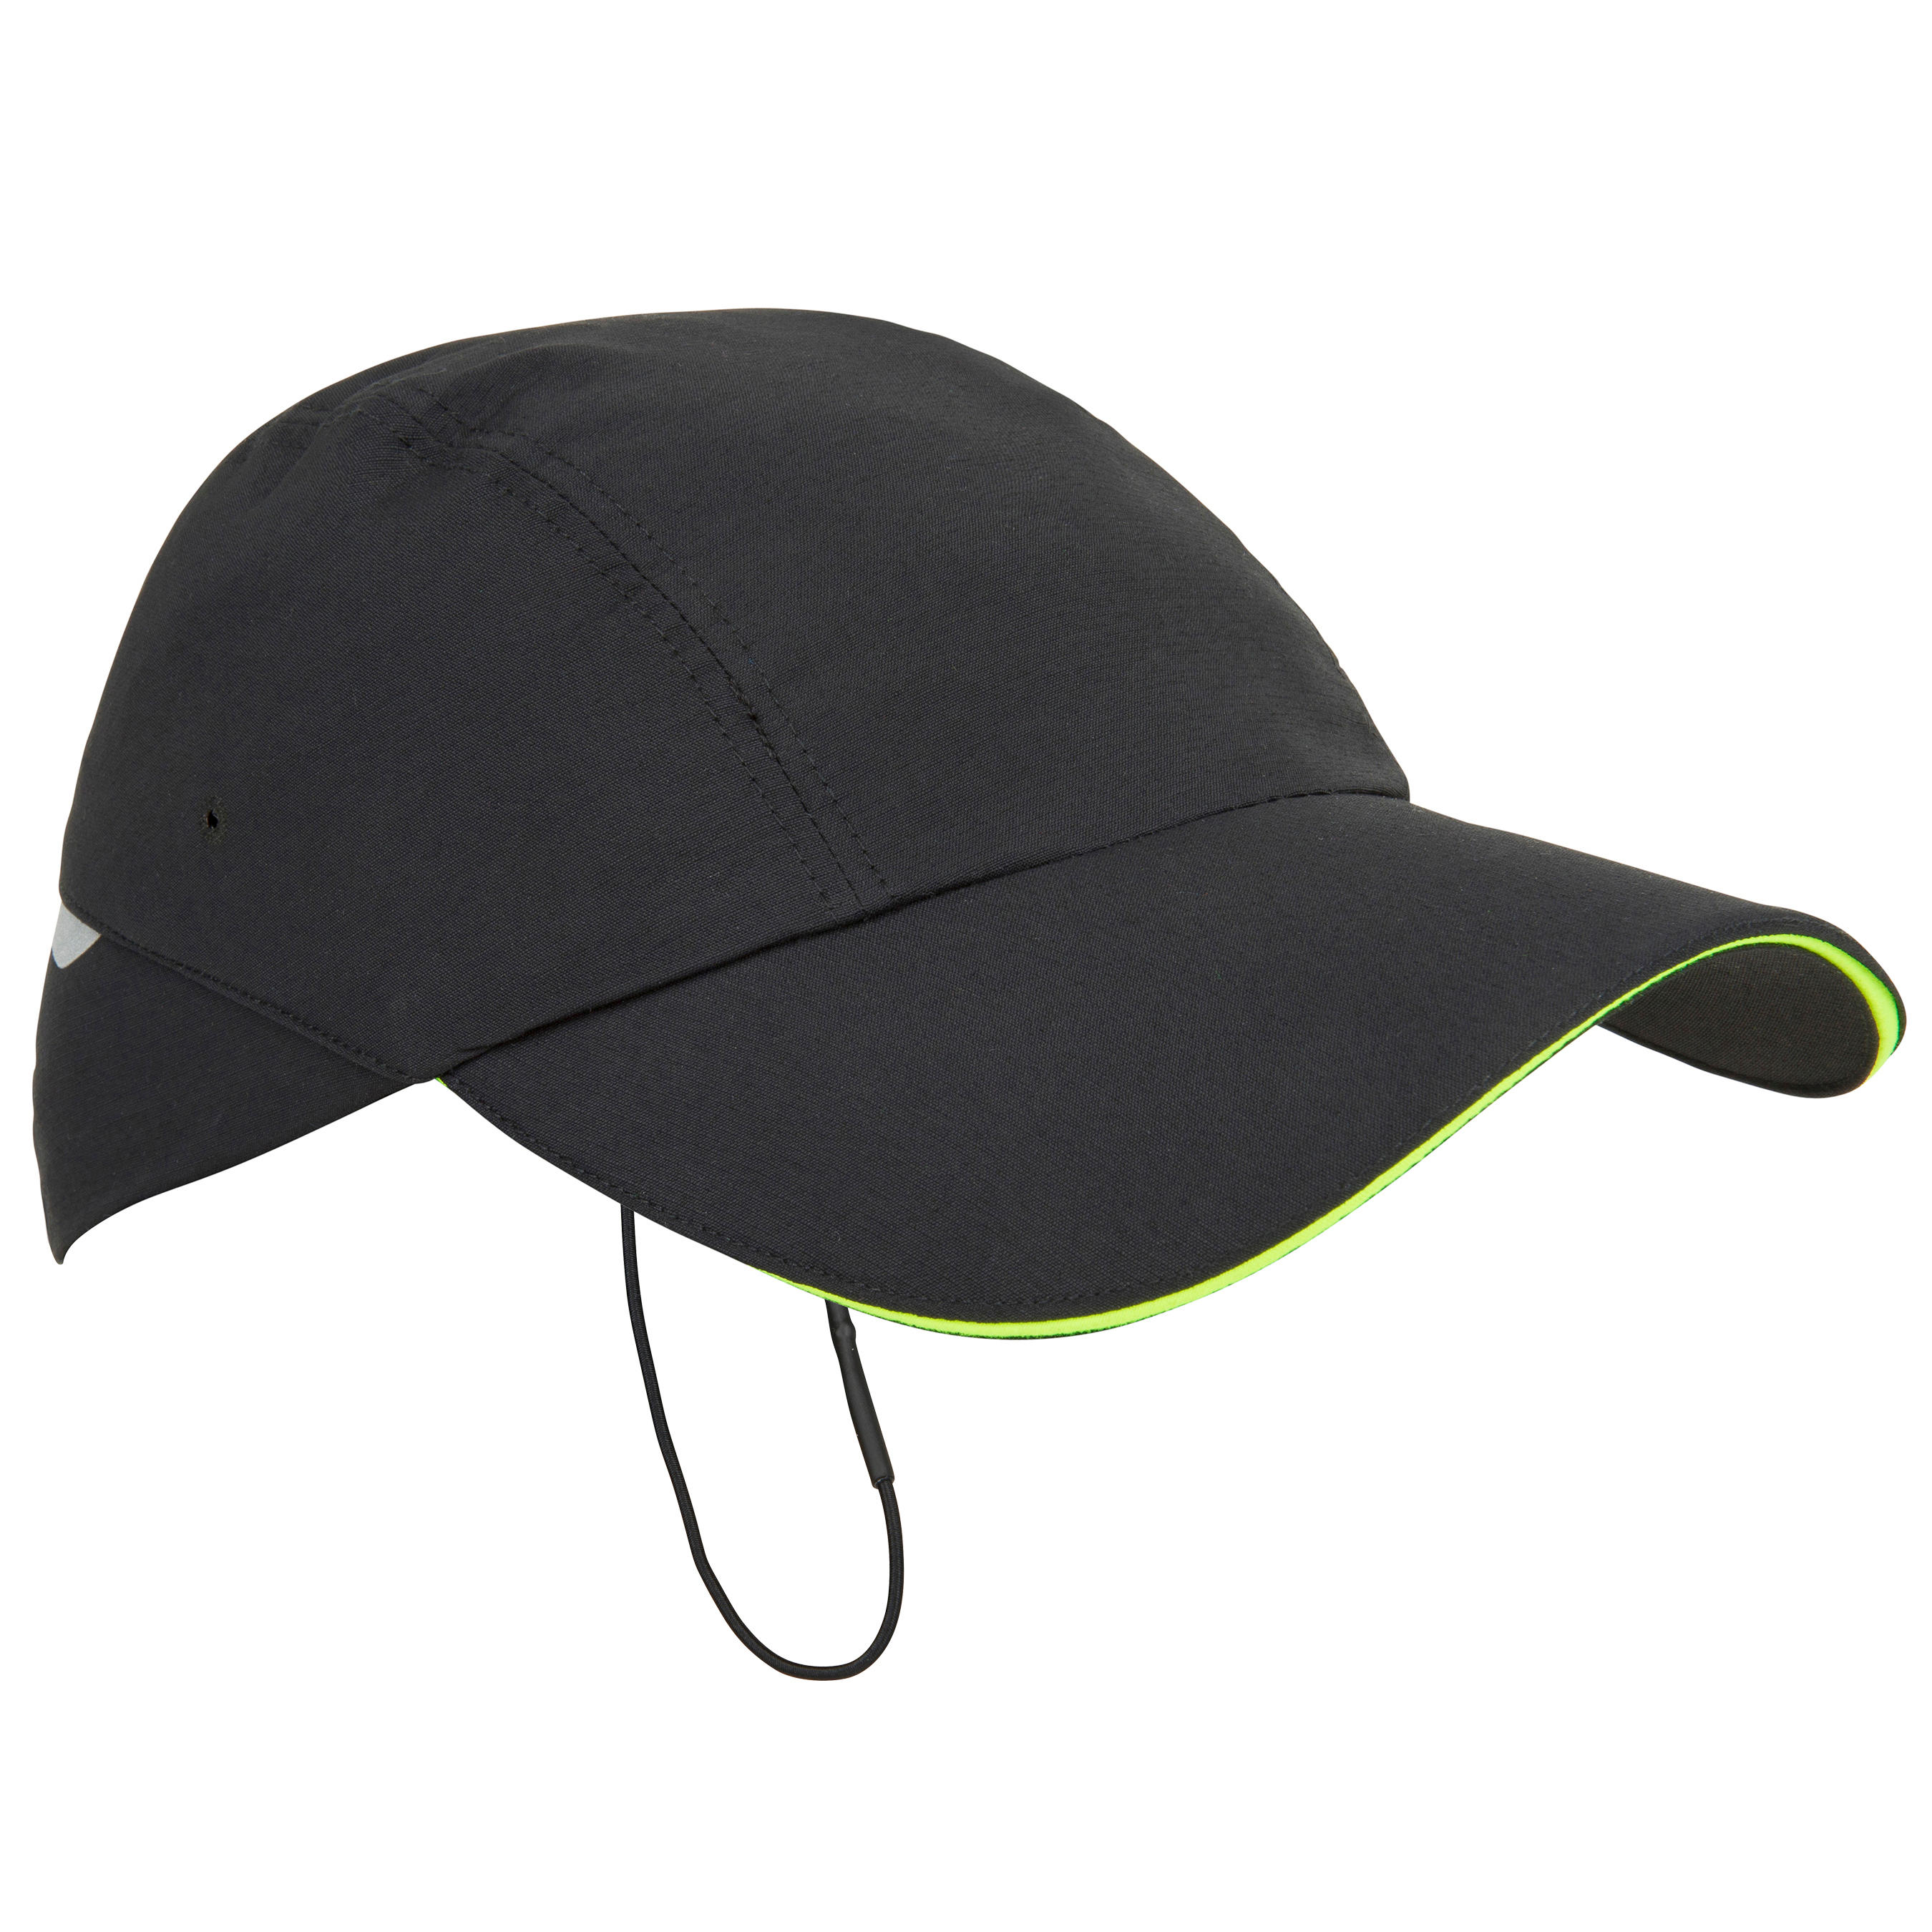 Adult Sailing Race Cap - Black